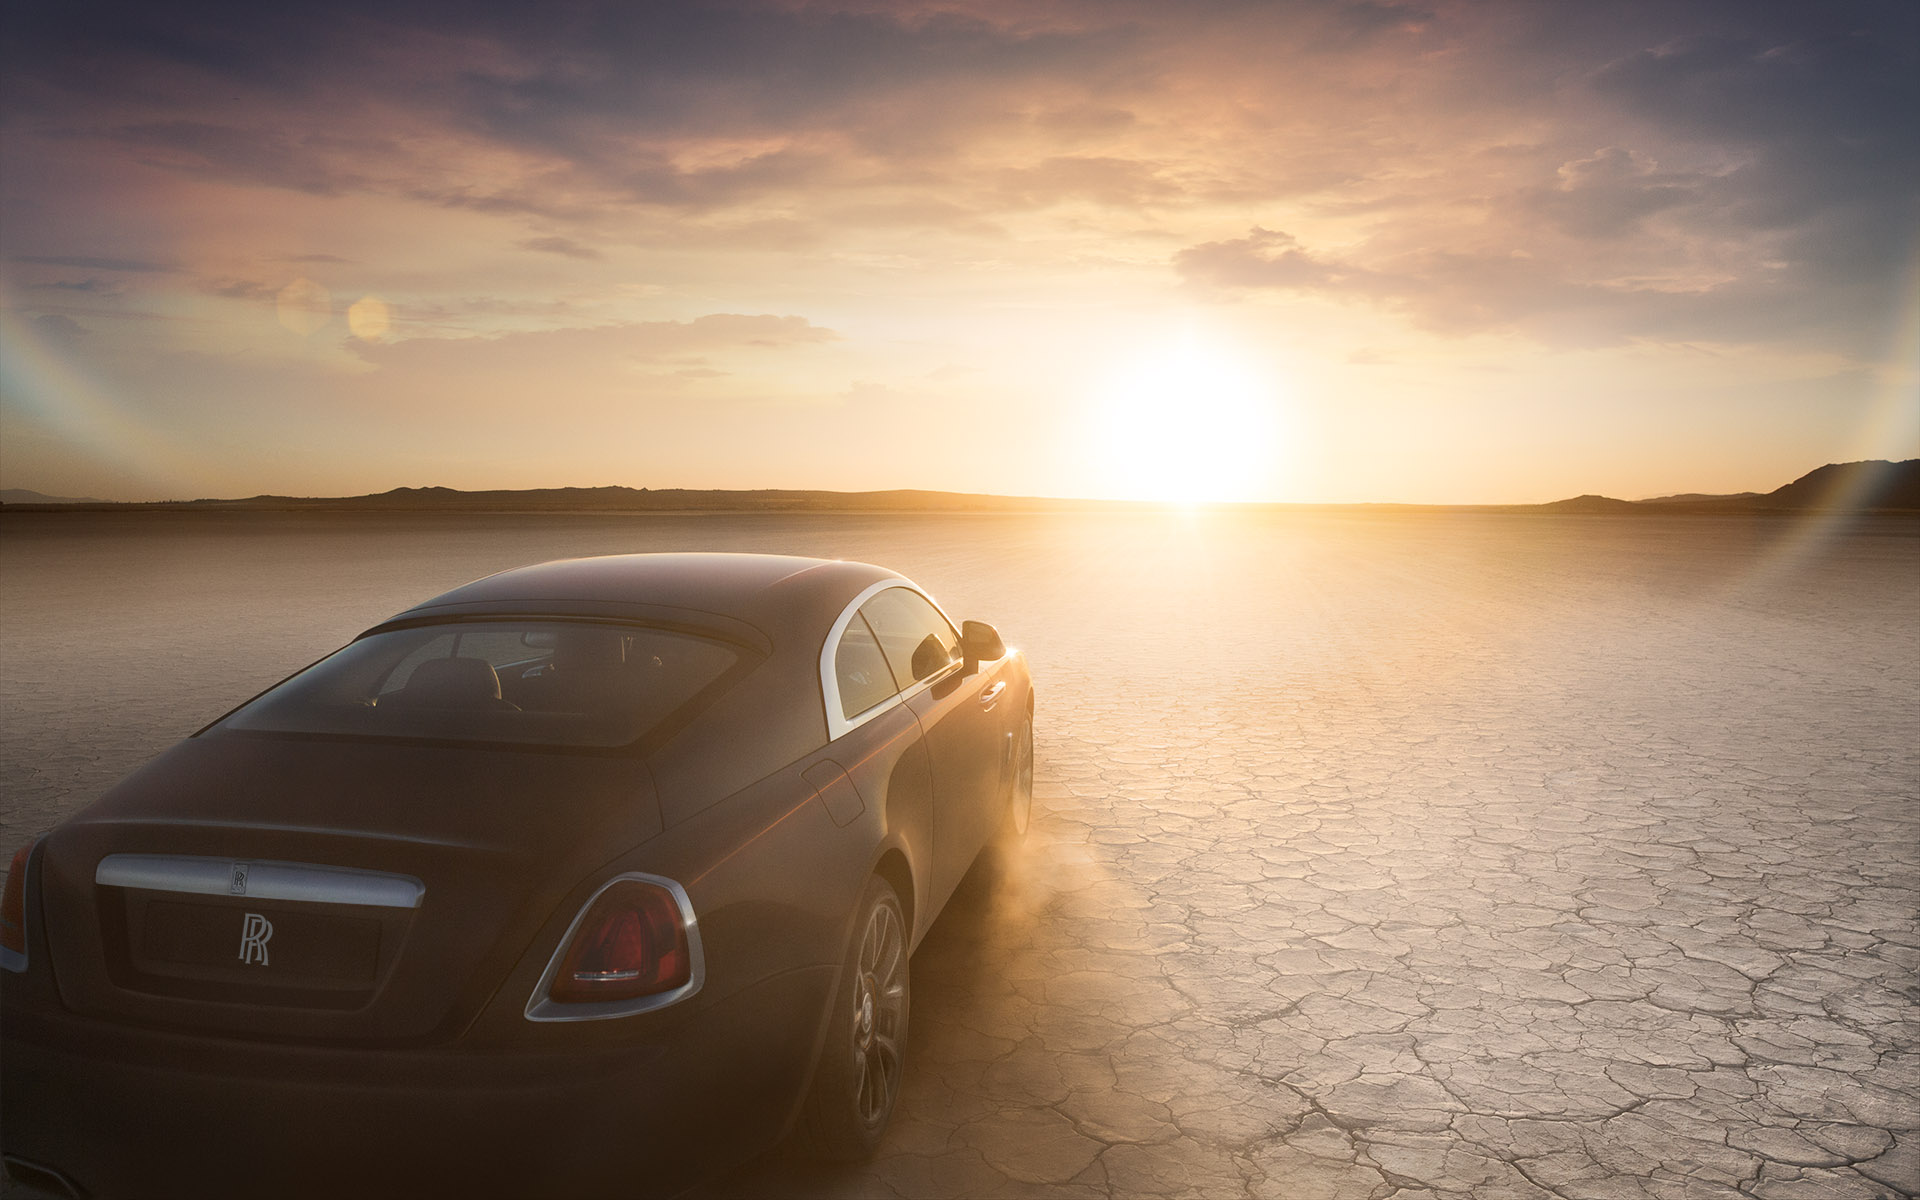 Rolls Royce Wraith • Daughter Creative: Stuart Jackson/Gareth Hopkins • Creative agency: Intro • Art Direction: Julian Gibbs • Photography: Randall Slavin